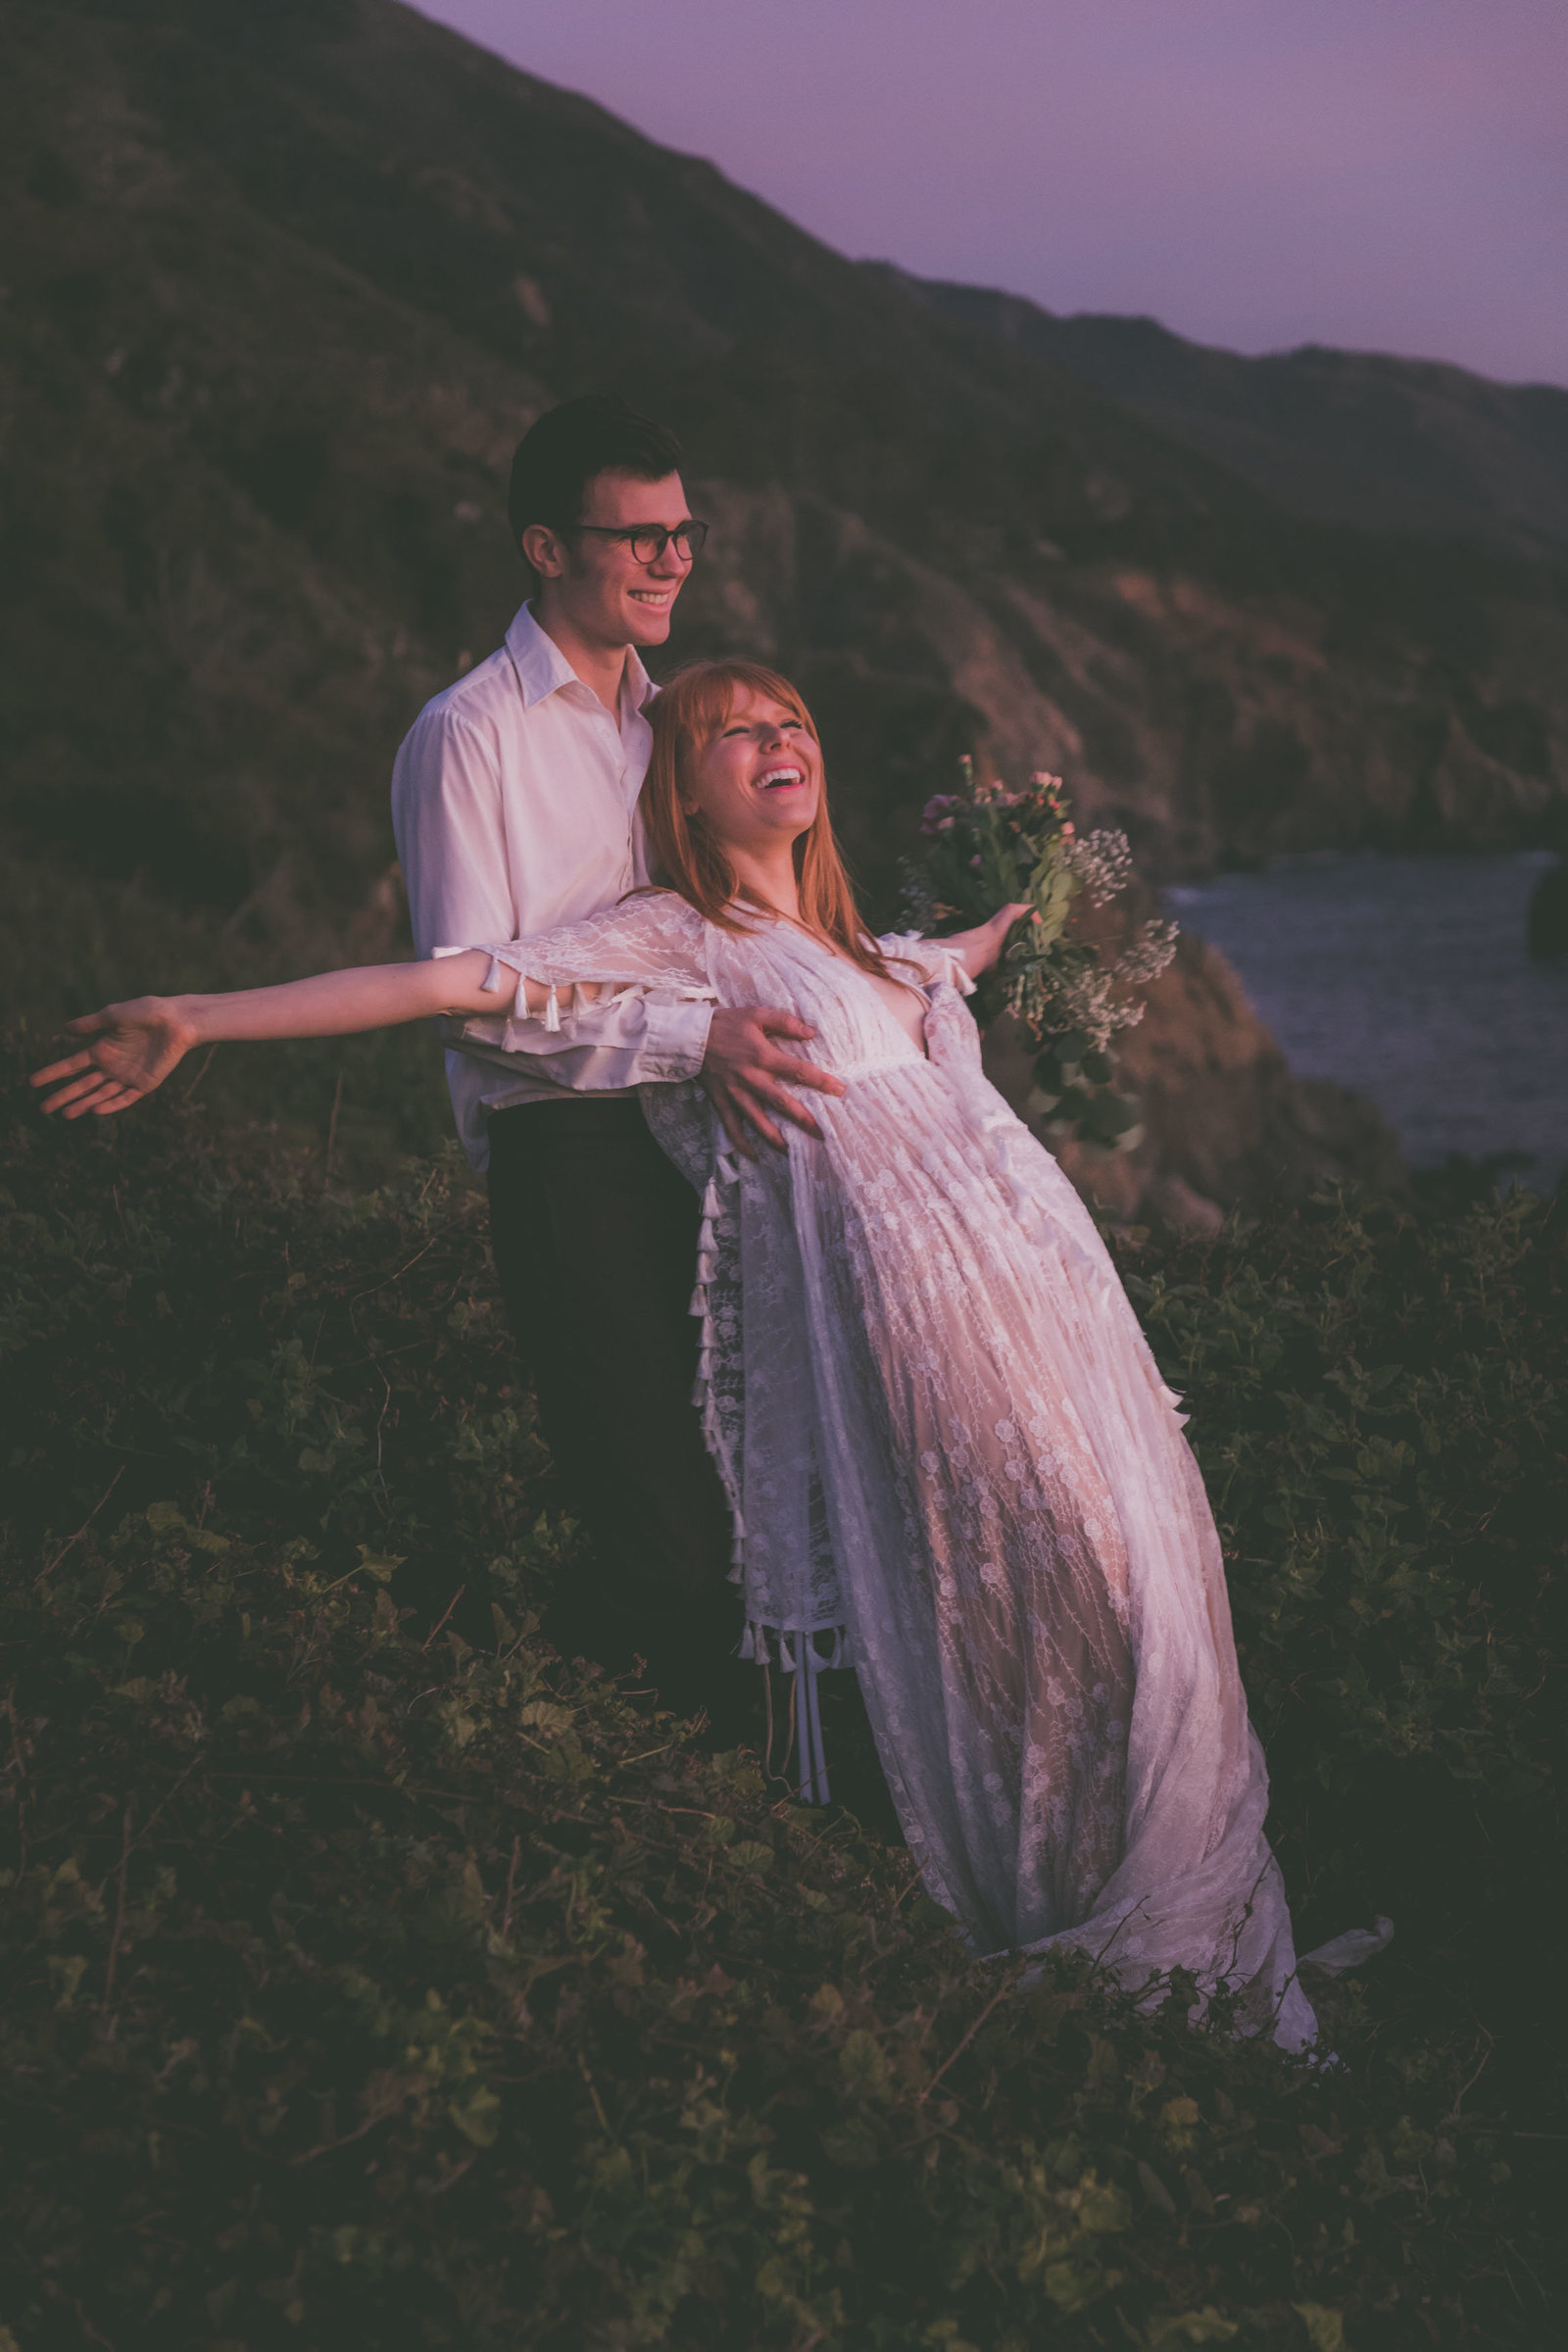 A couple does a trust fall while enjoying the sunset in Big Sur.